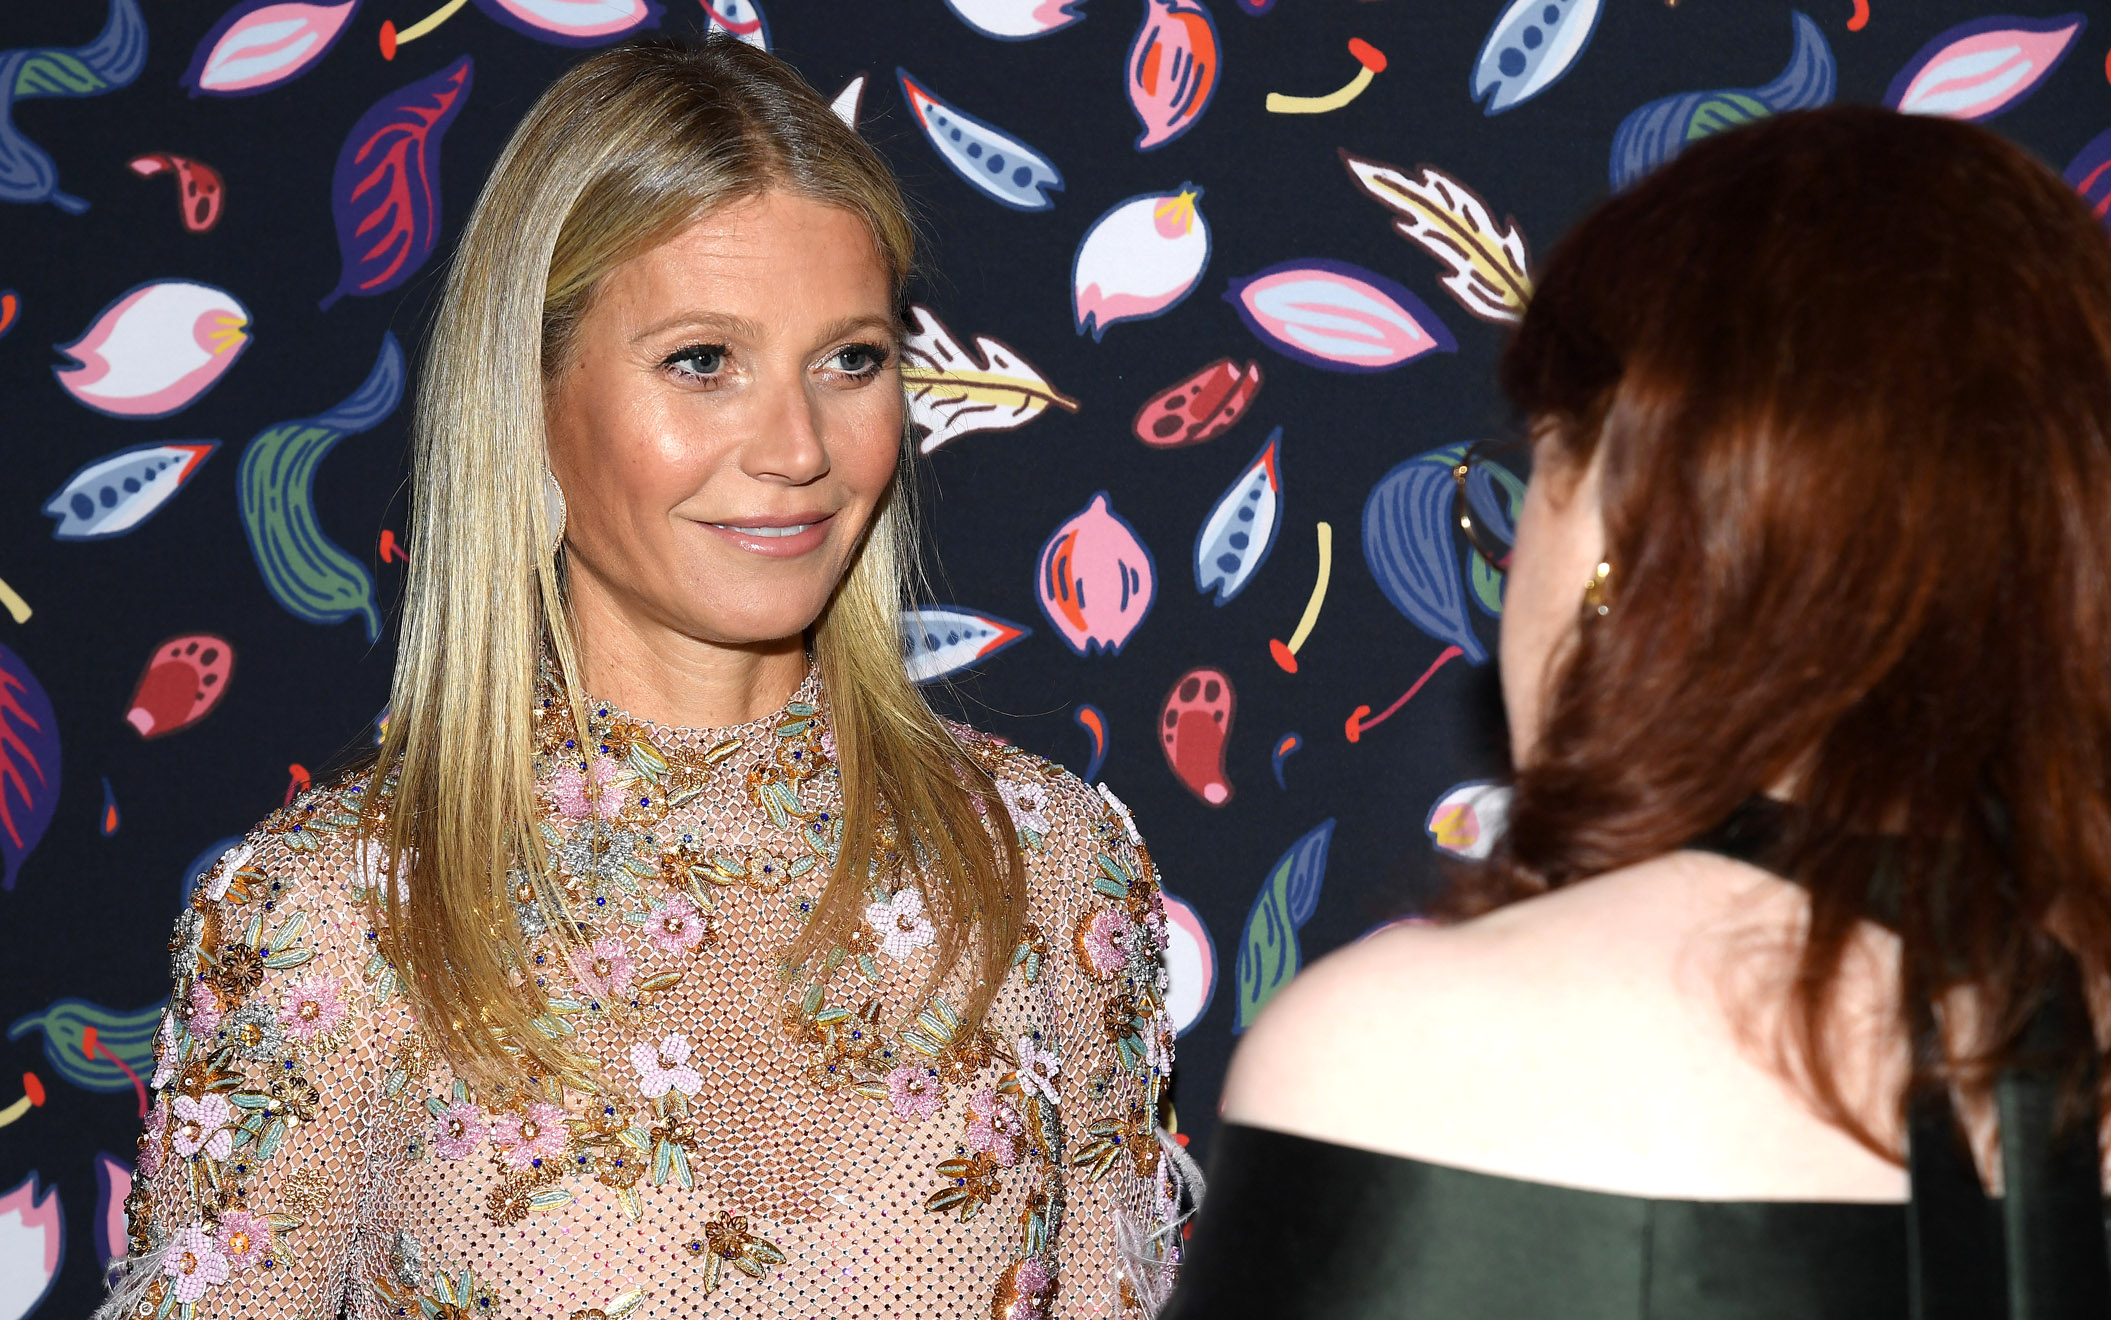 Gwyneth Paltrow Is Getting Dragged (Again) For Saying Something Insufferable And Elitist